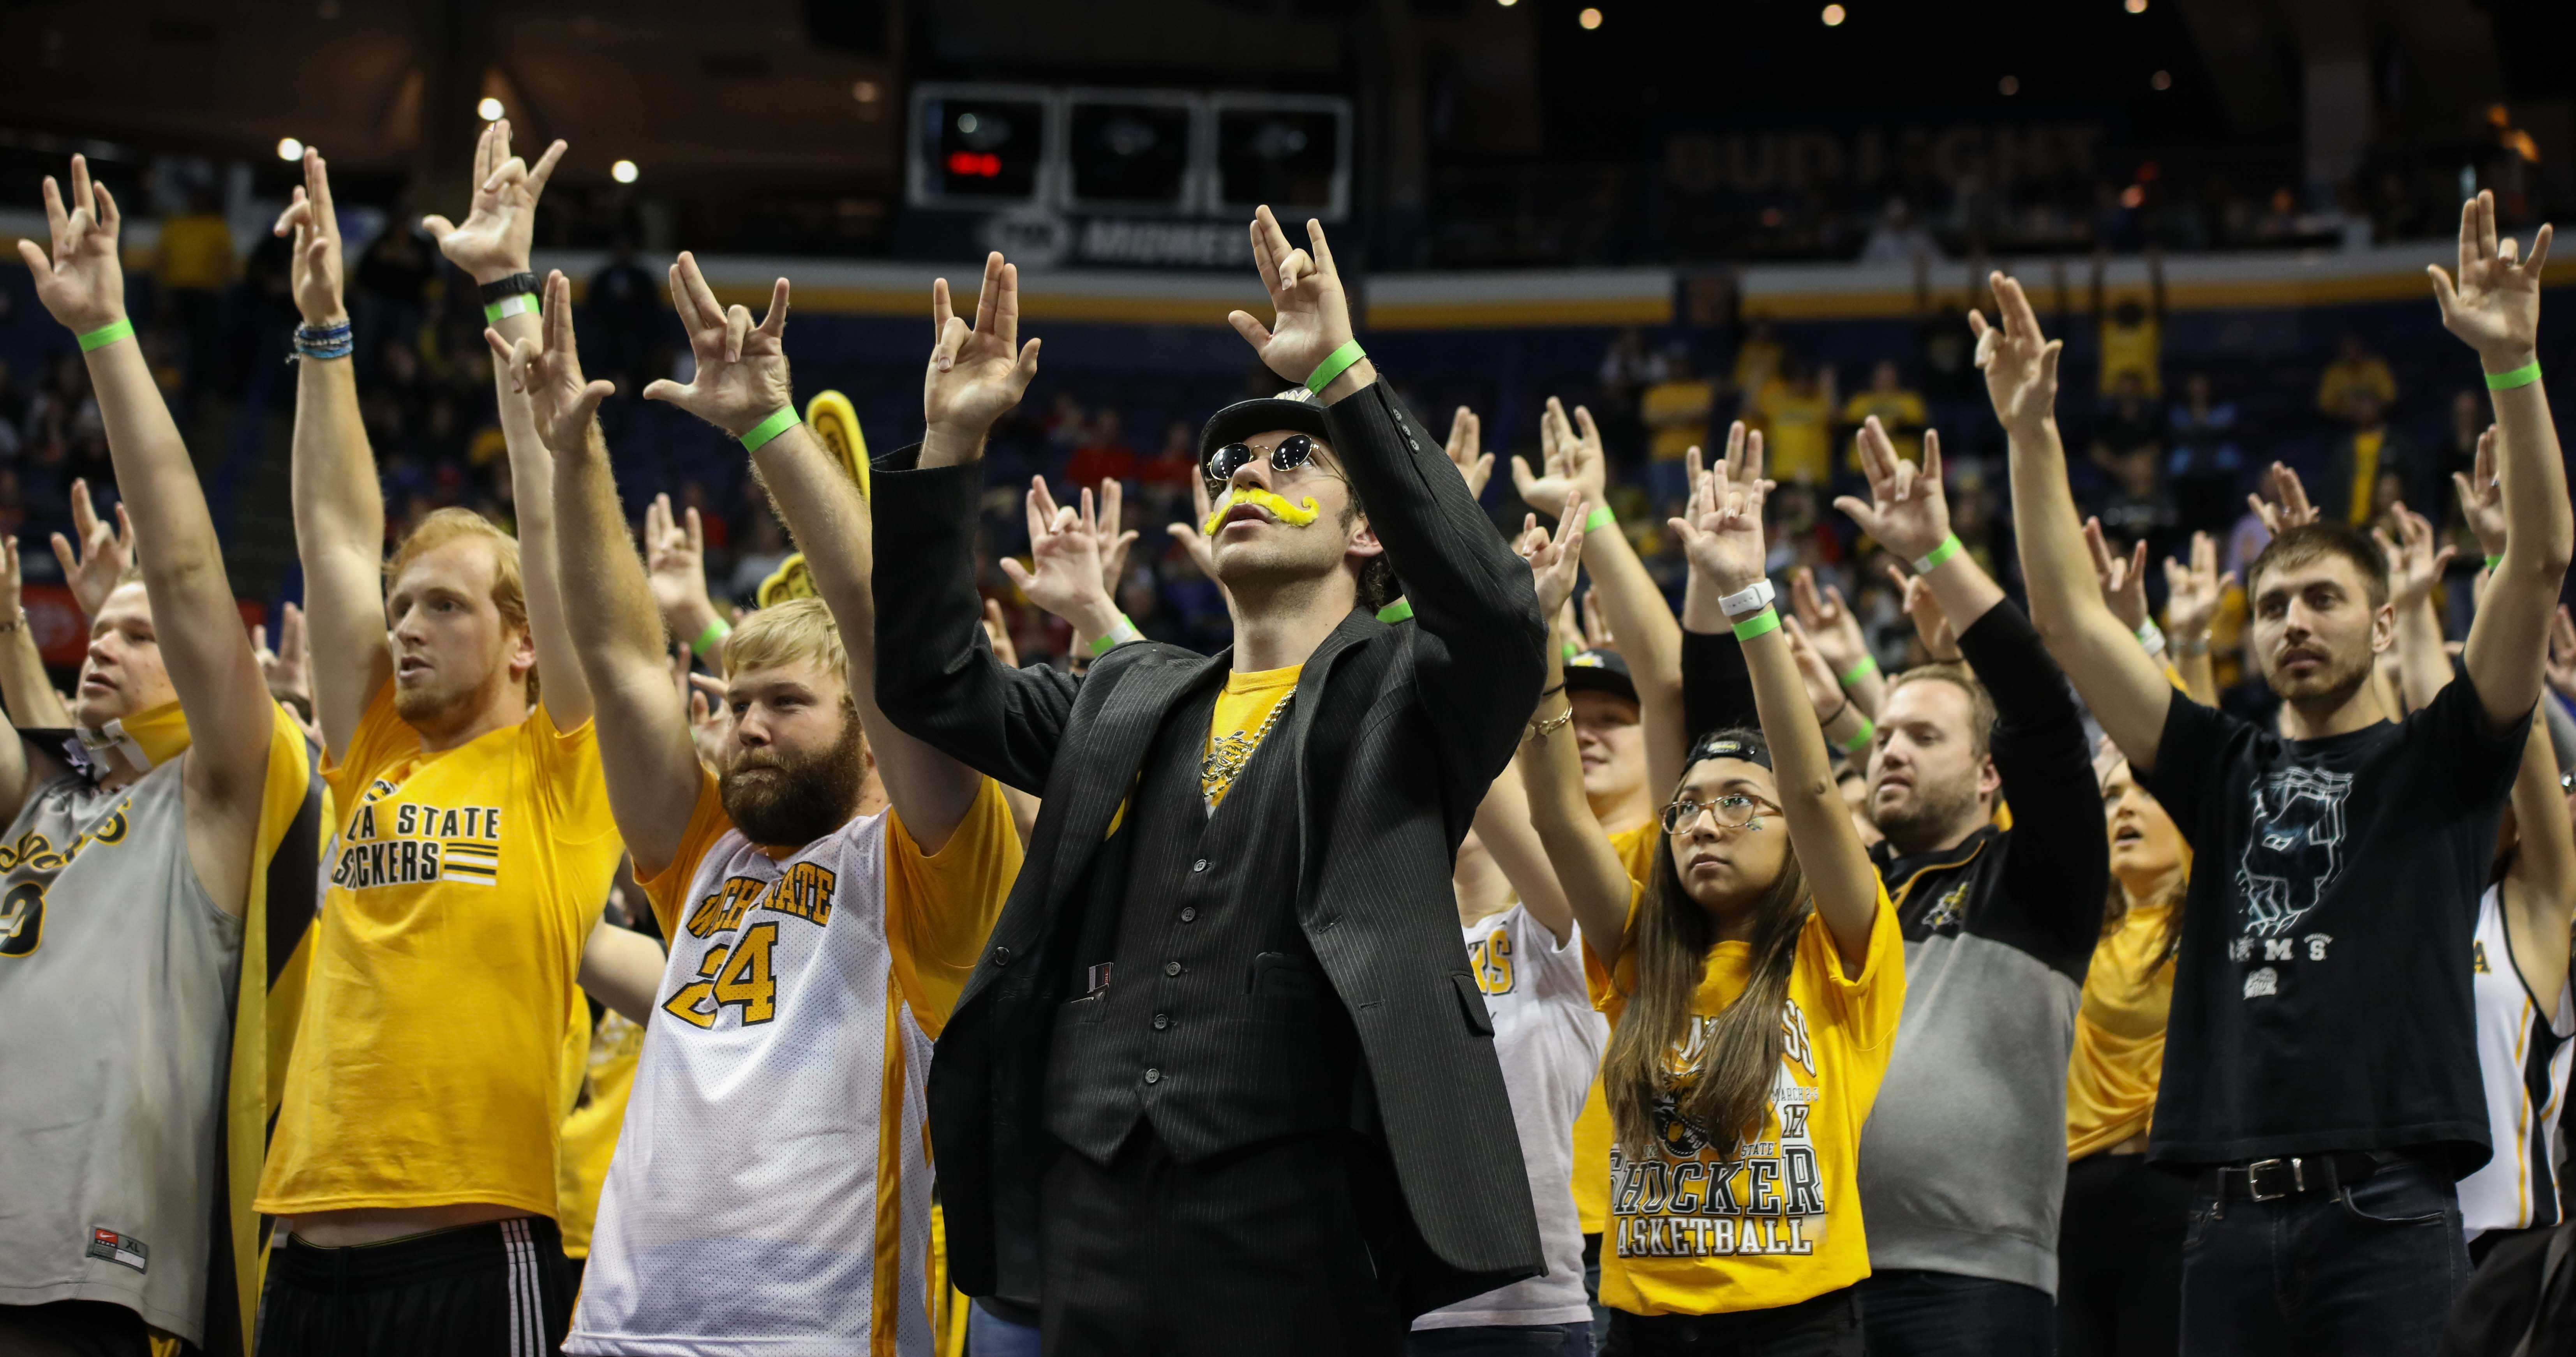 Shockers fans wait for a made free throw.